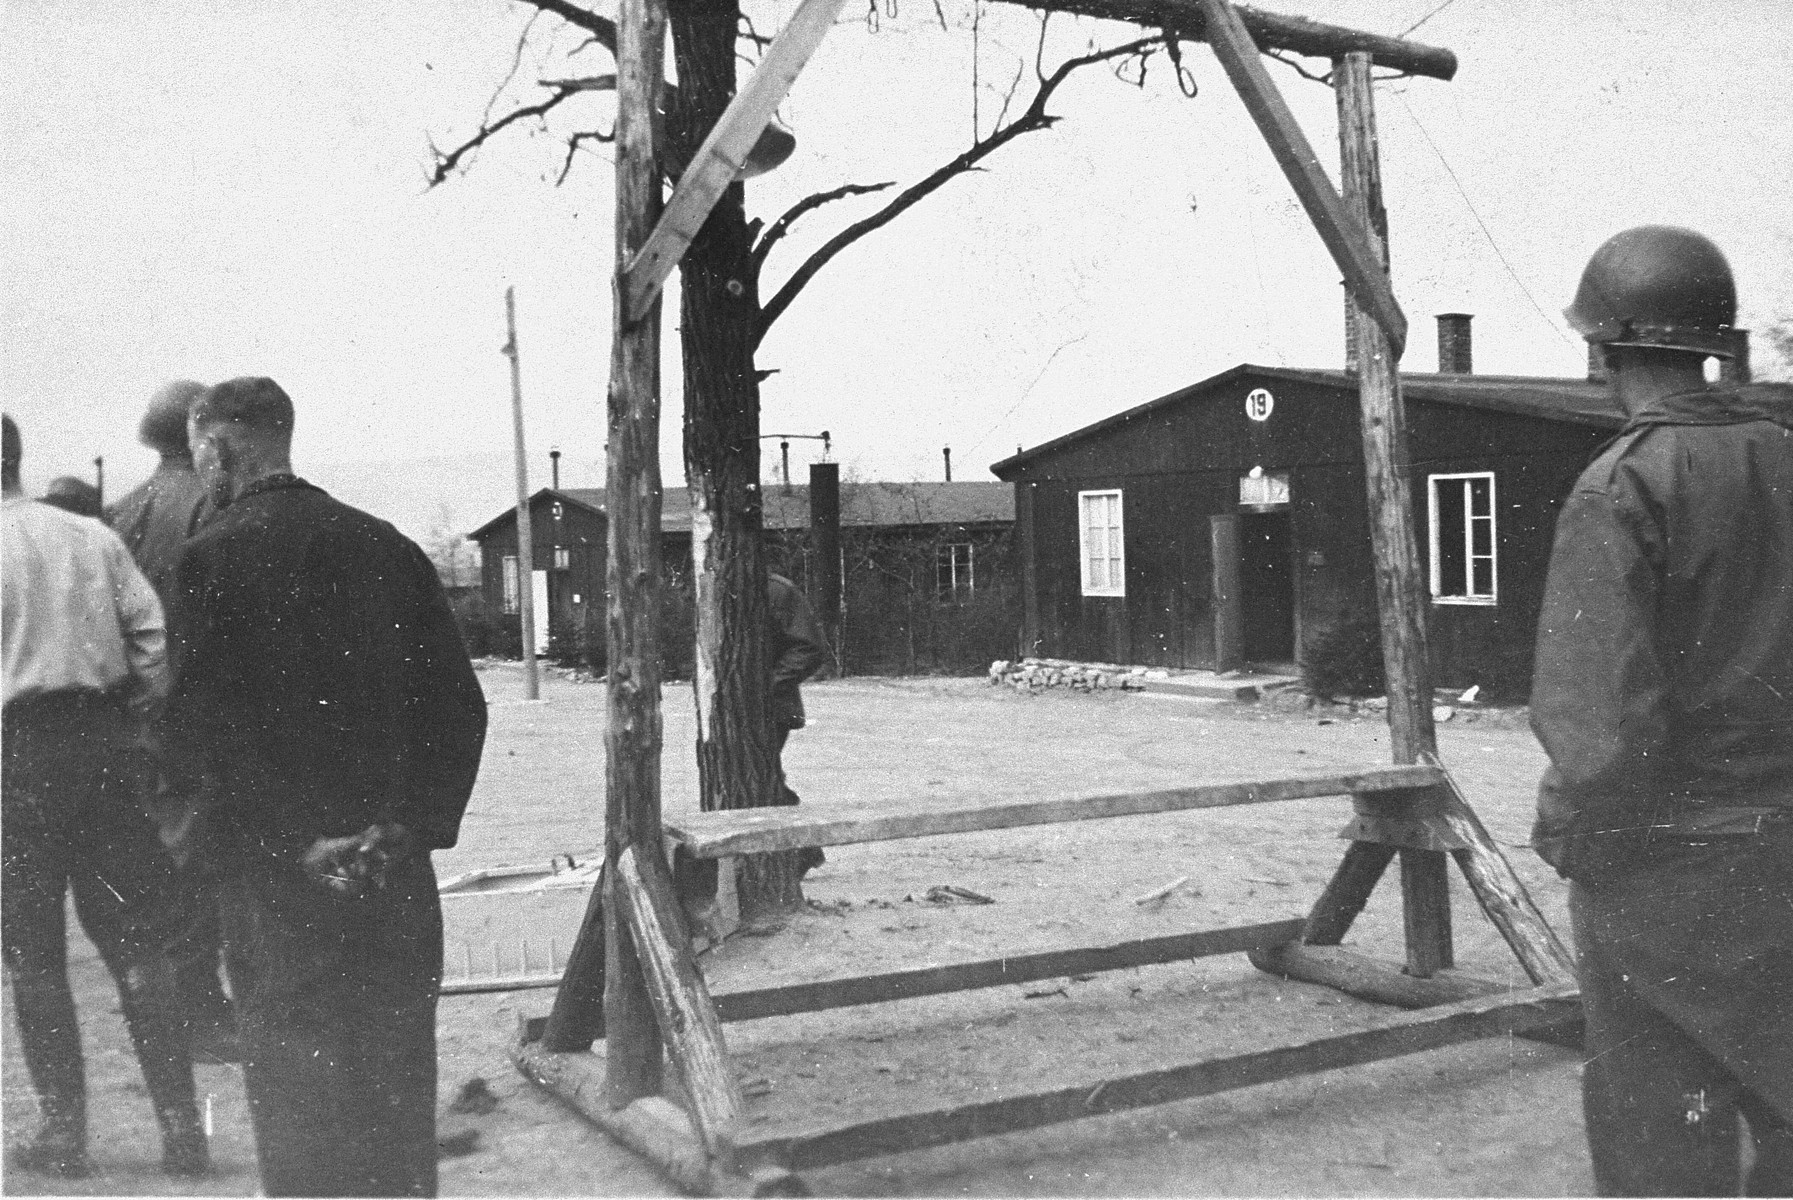 An American soldier views the gallows at the newly liberated Ohrdruf concentration camp during an inspection tour.